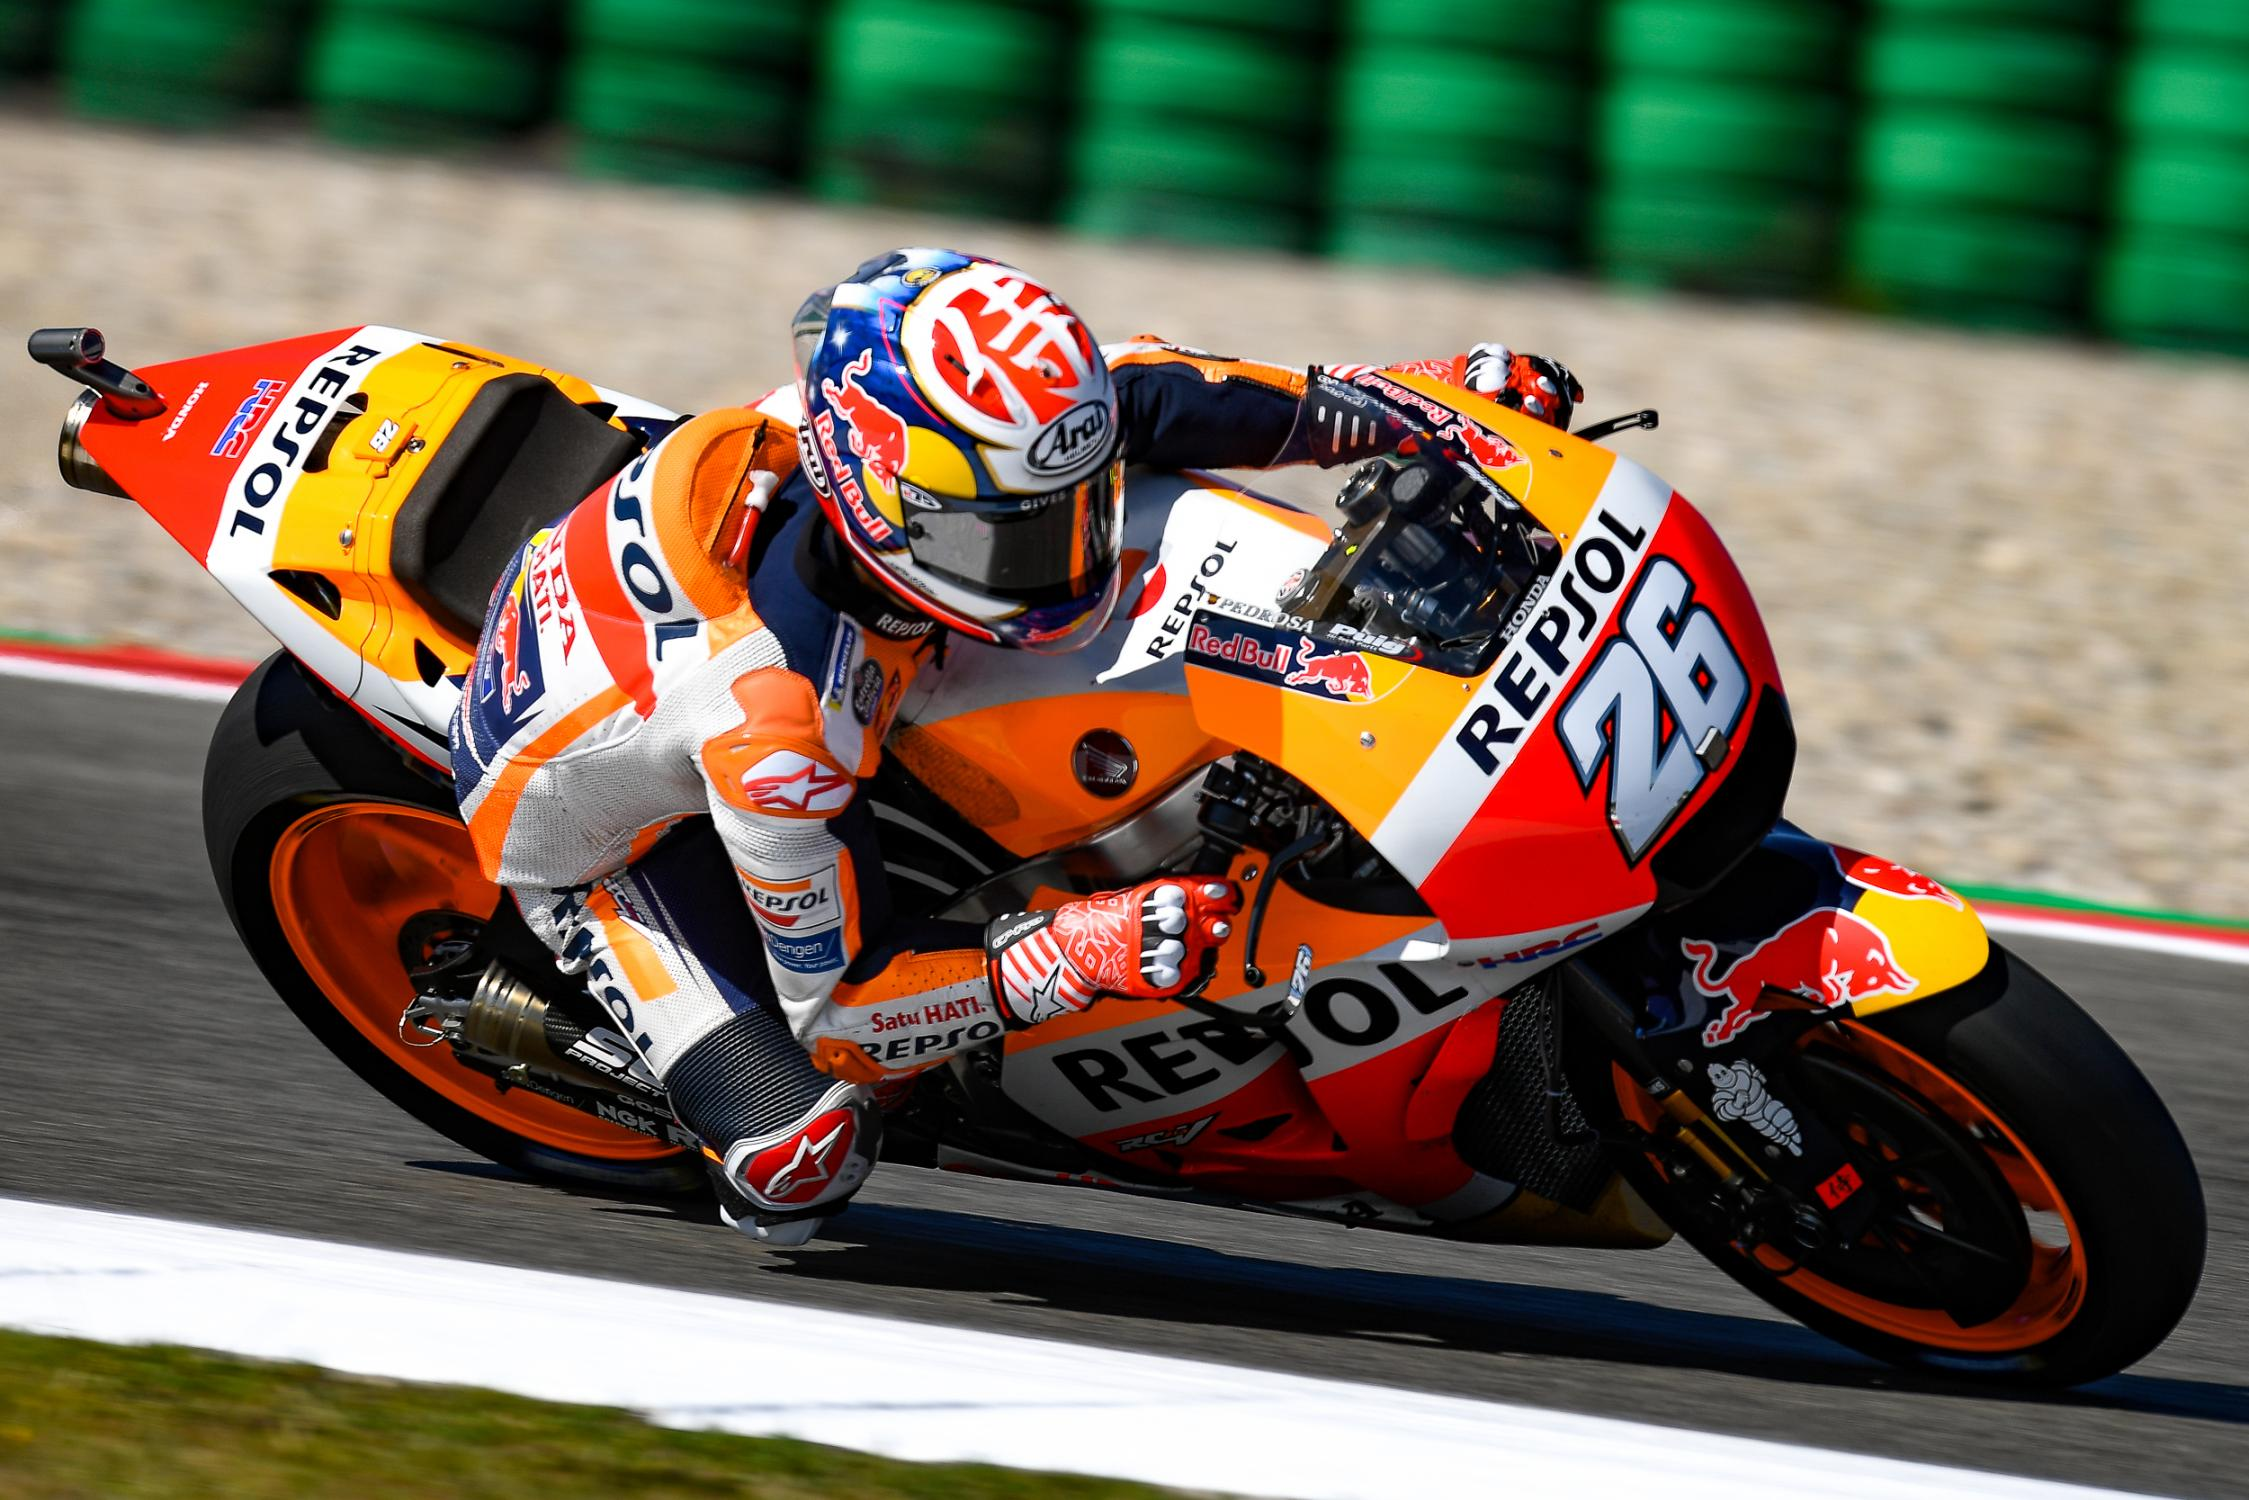 26-dani-pedrosa-esp_ds55717.gallery_full_top_fullscreen.jpg